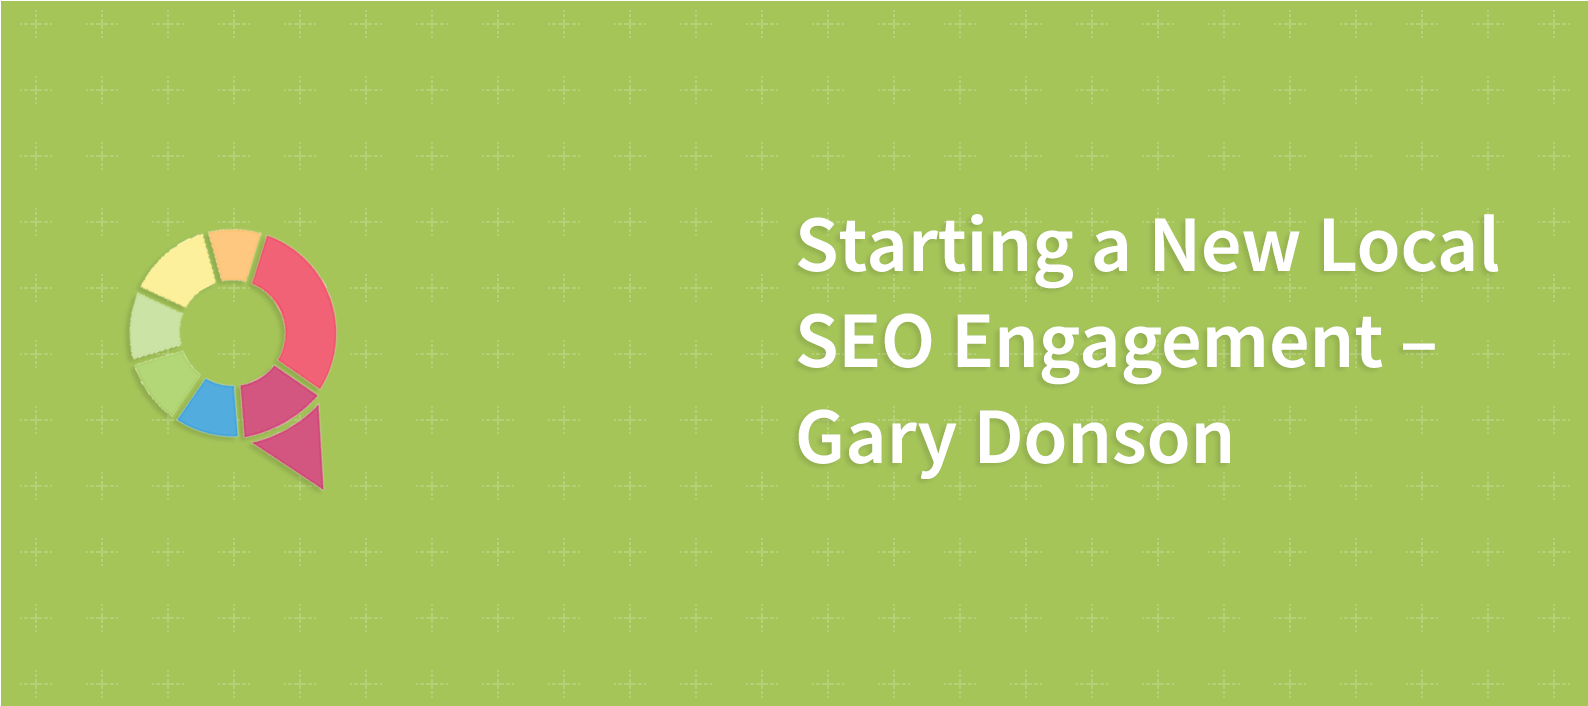 SEO Agency Interview on New Engagement with Gary Donson